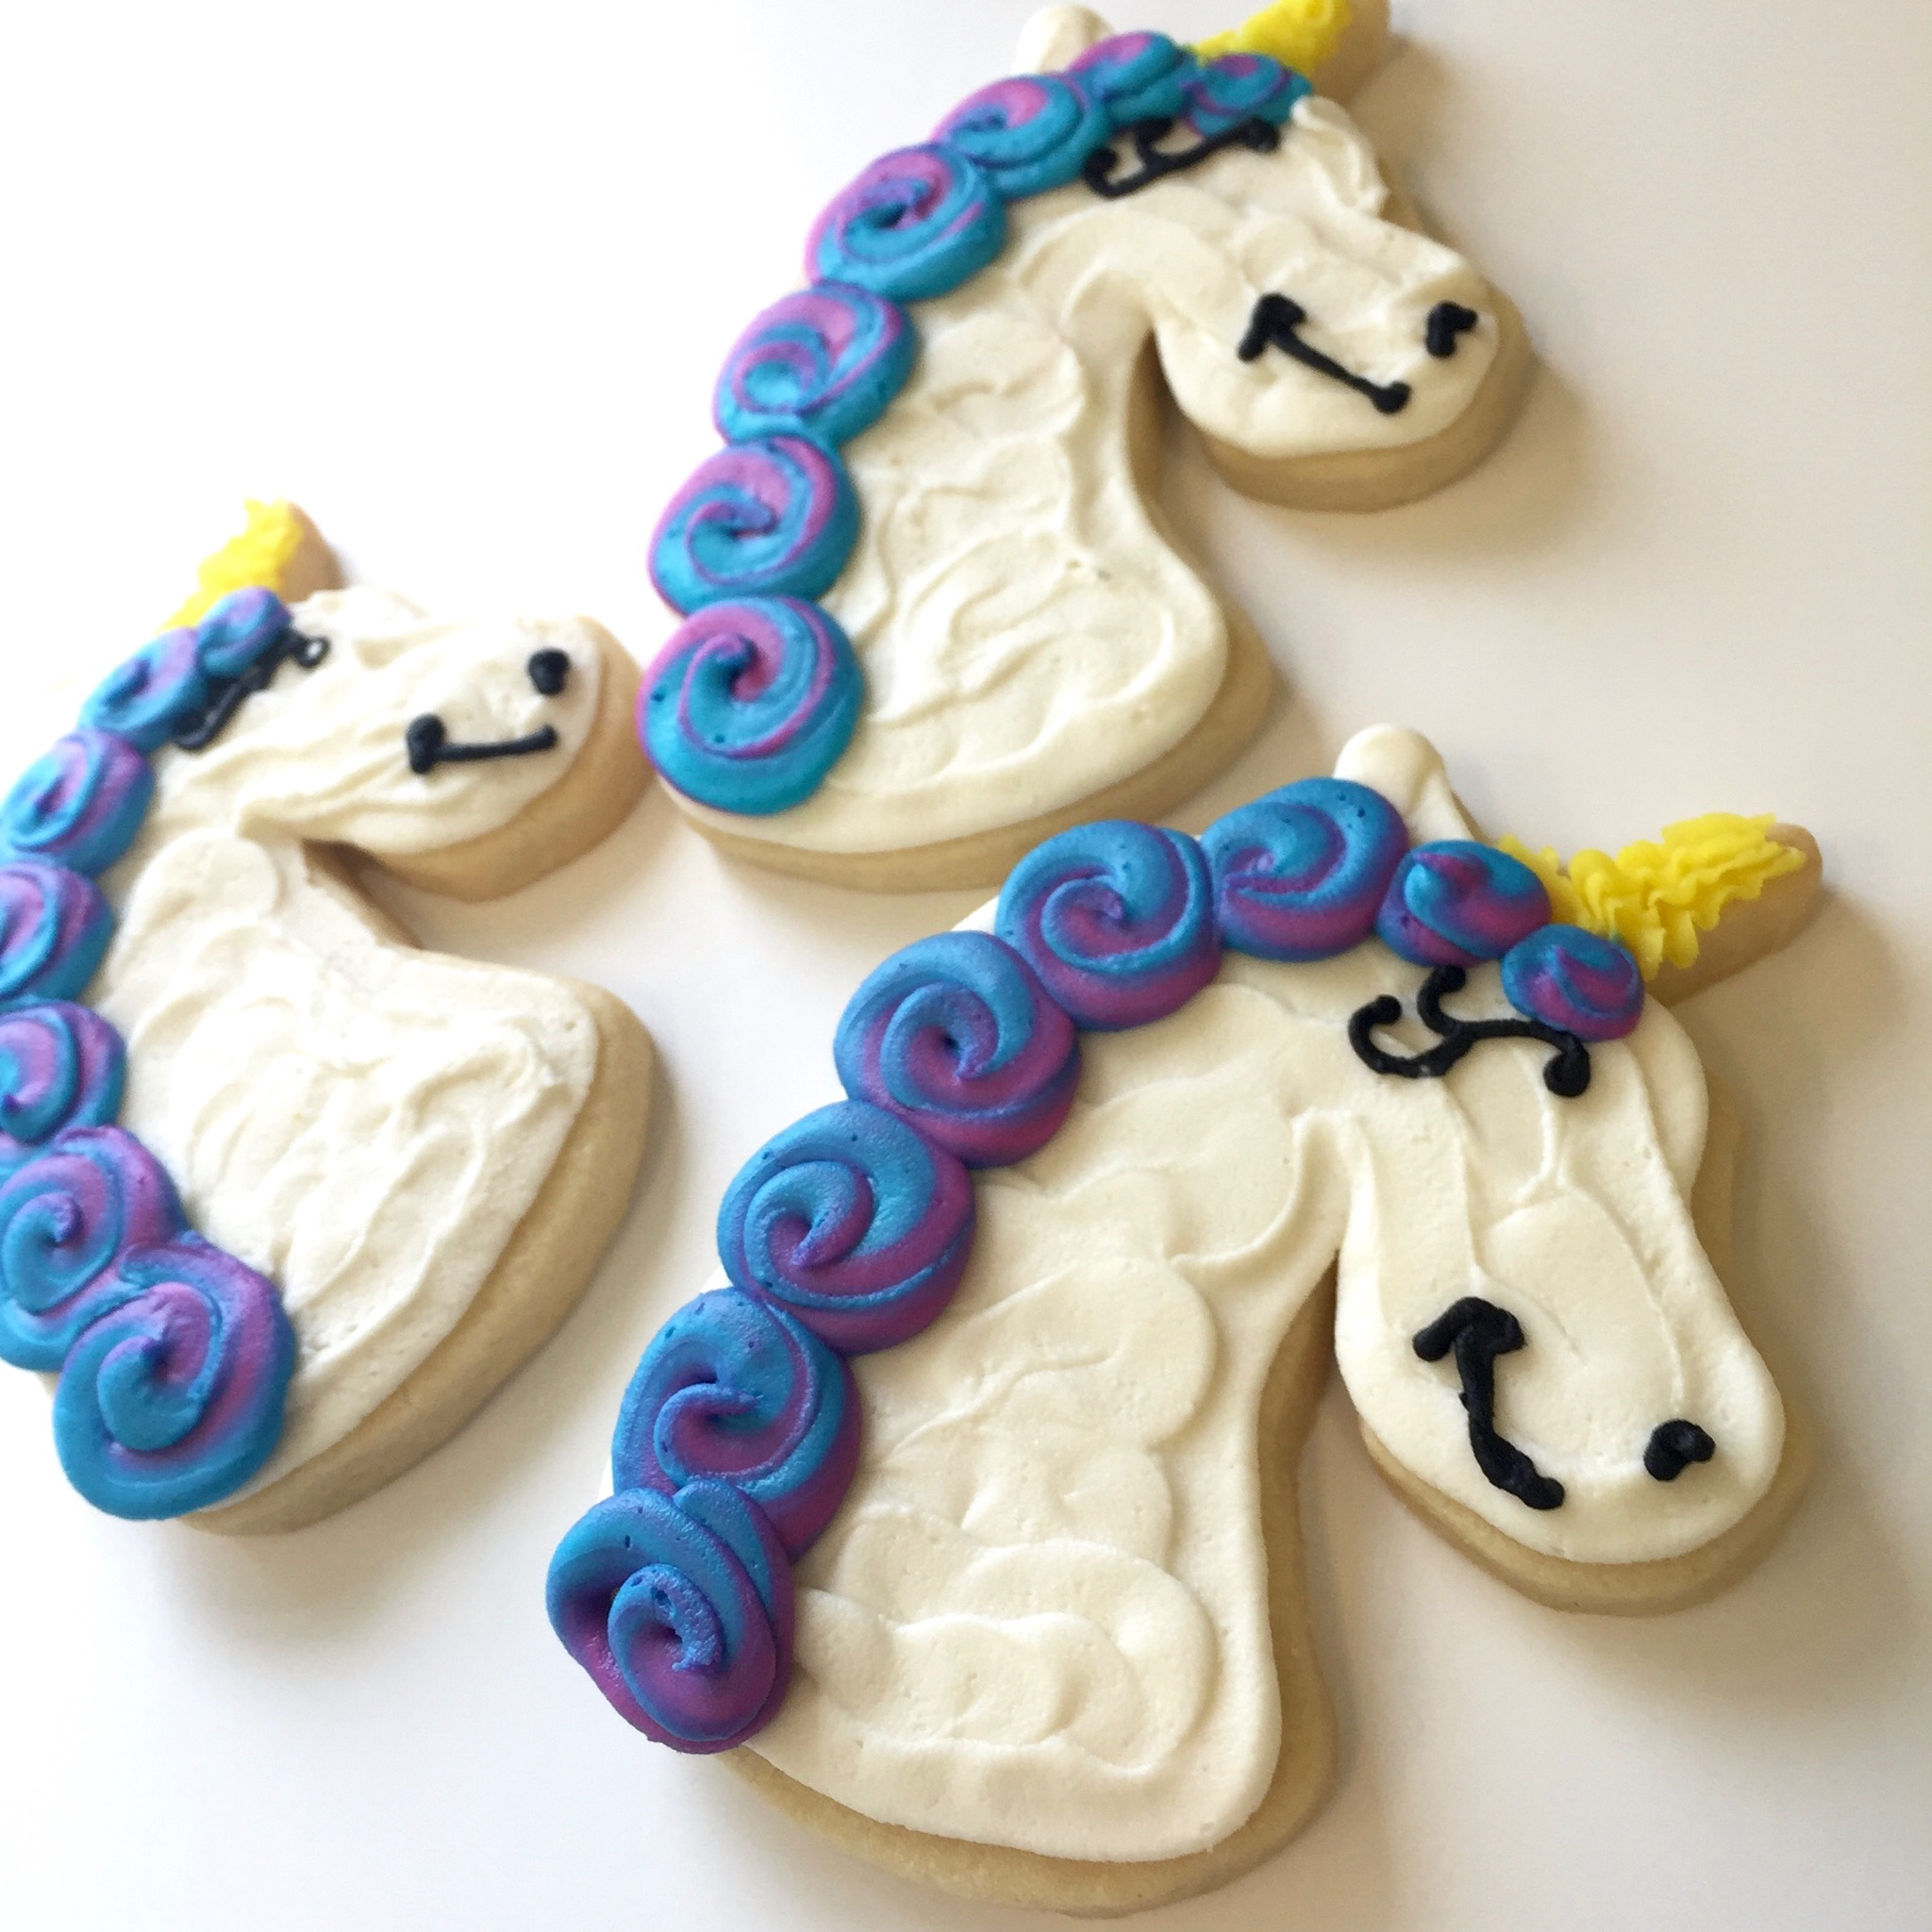 Animal.Unicorn.Cookie.jpg